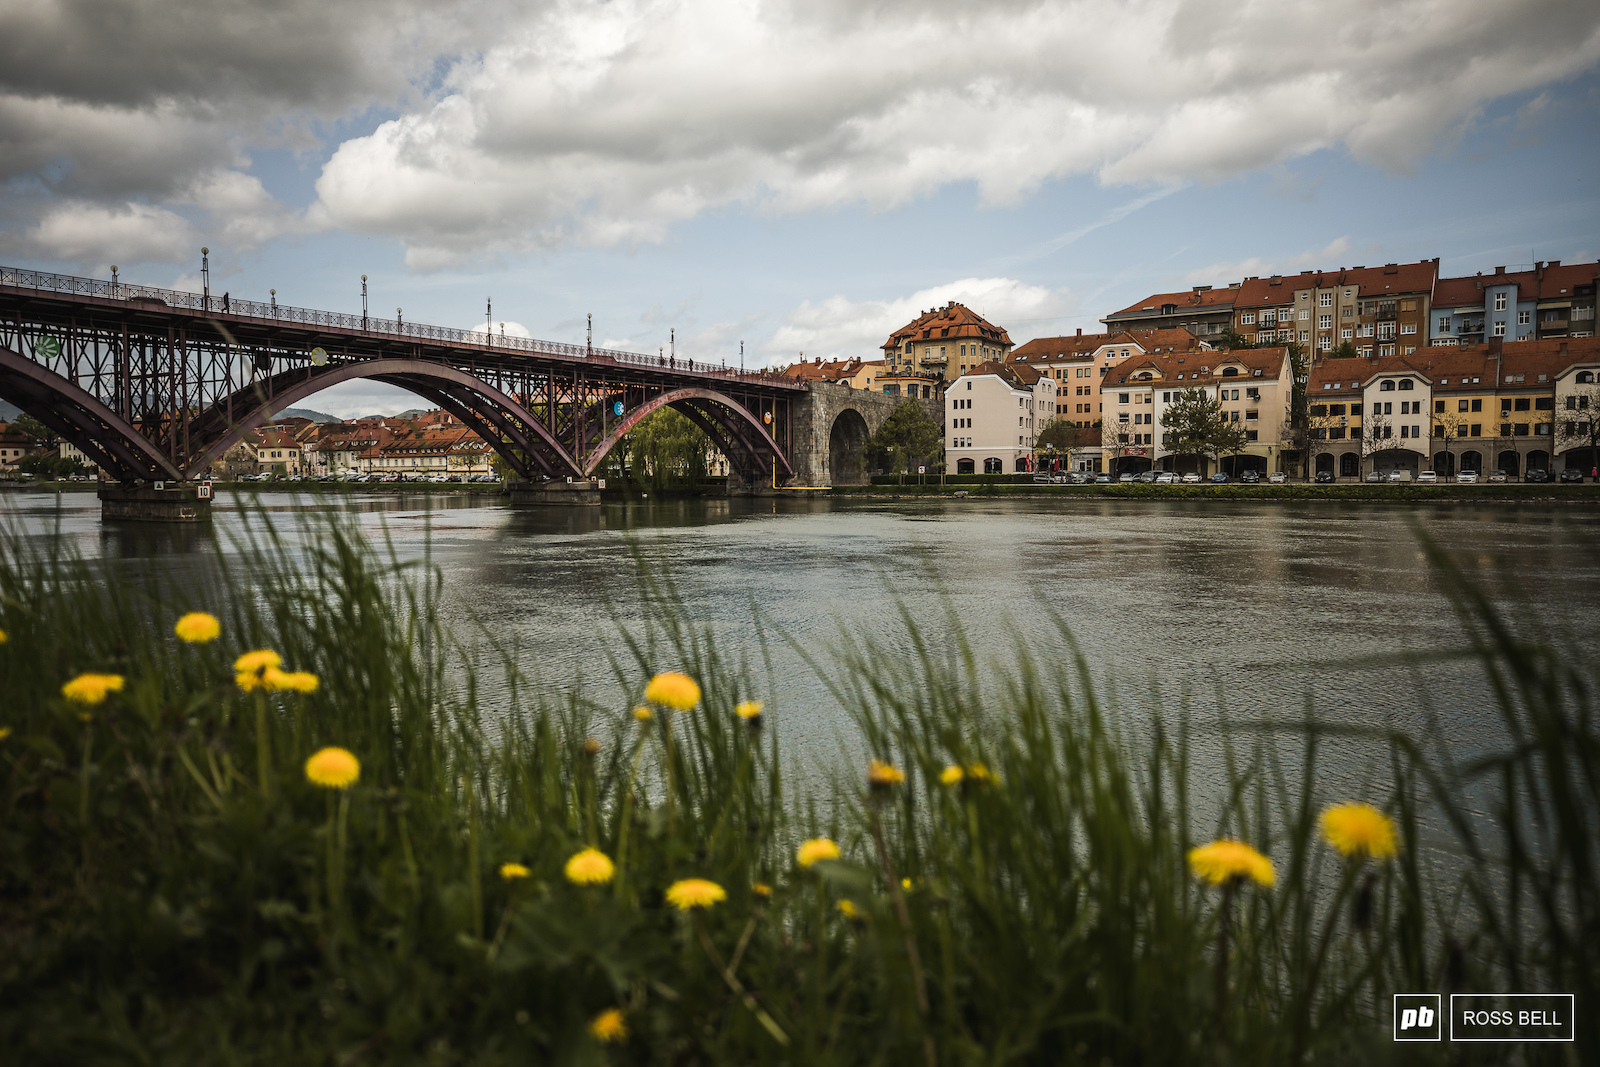 The quaint banks of the Drava river which runs right through the heart of Maribor.